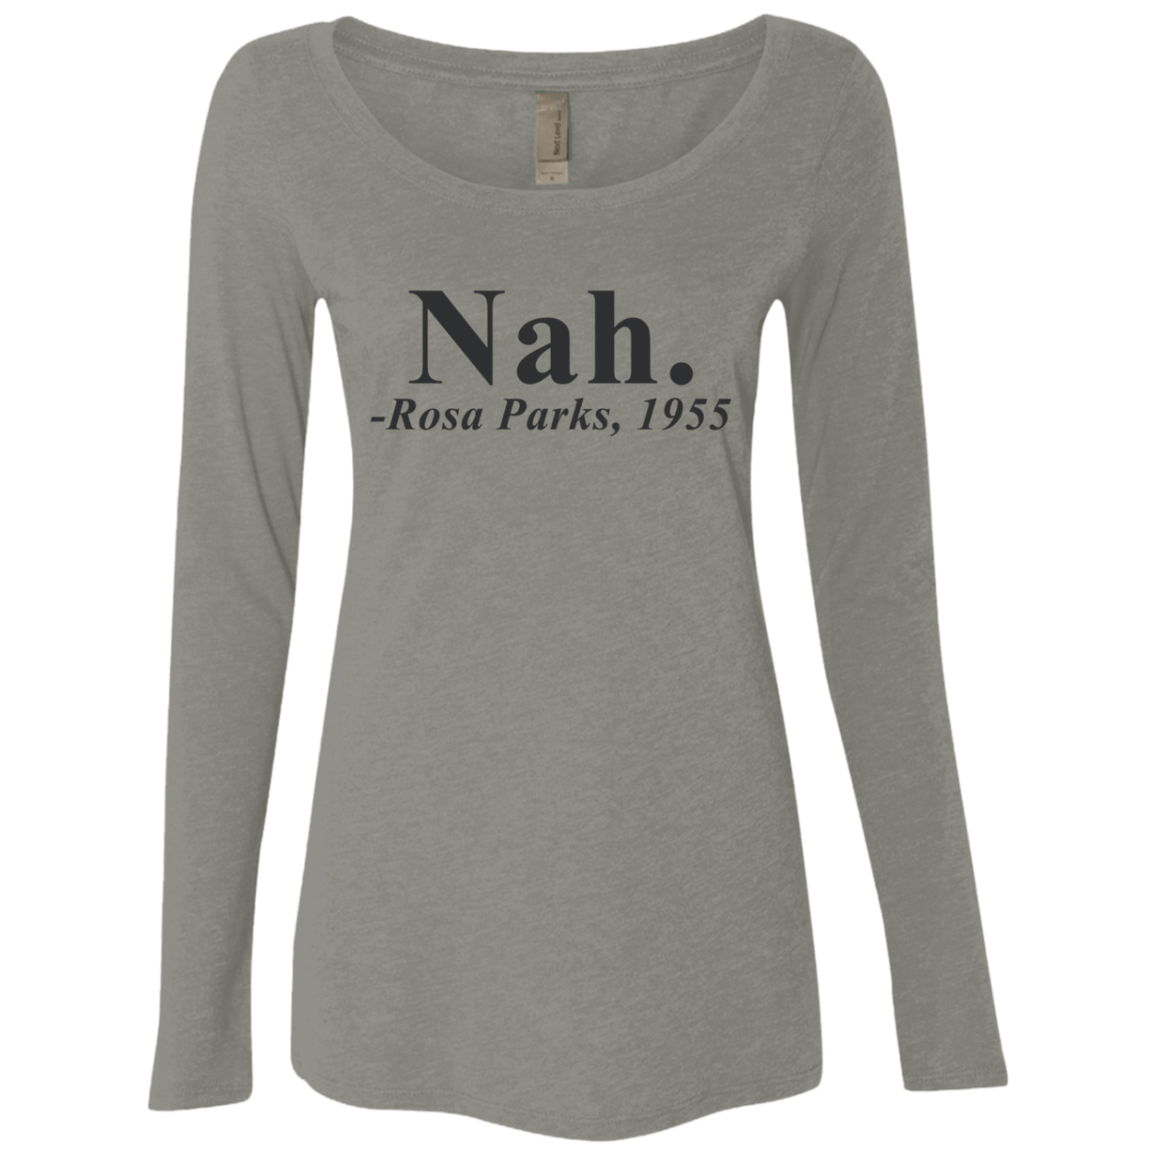 Nah - Rosa Parks Women's Long Sleeve Tee